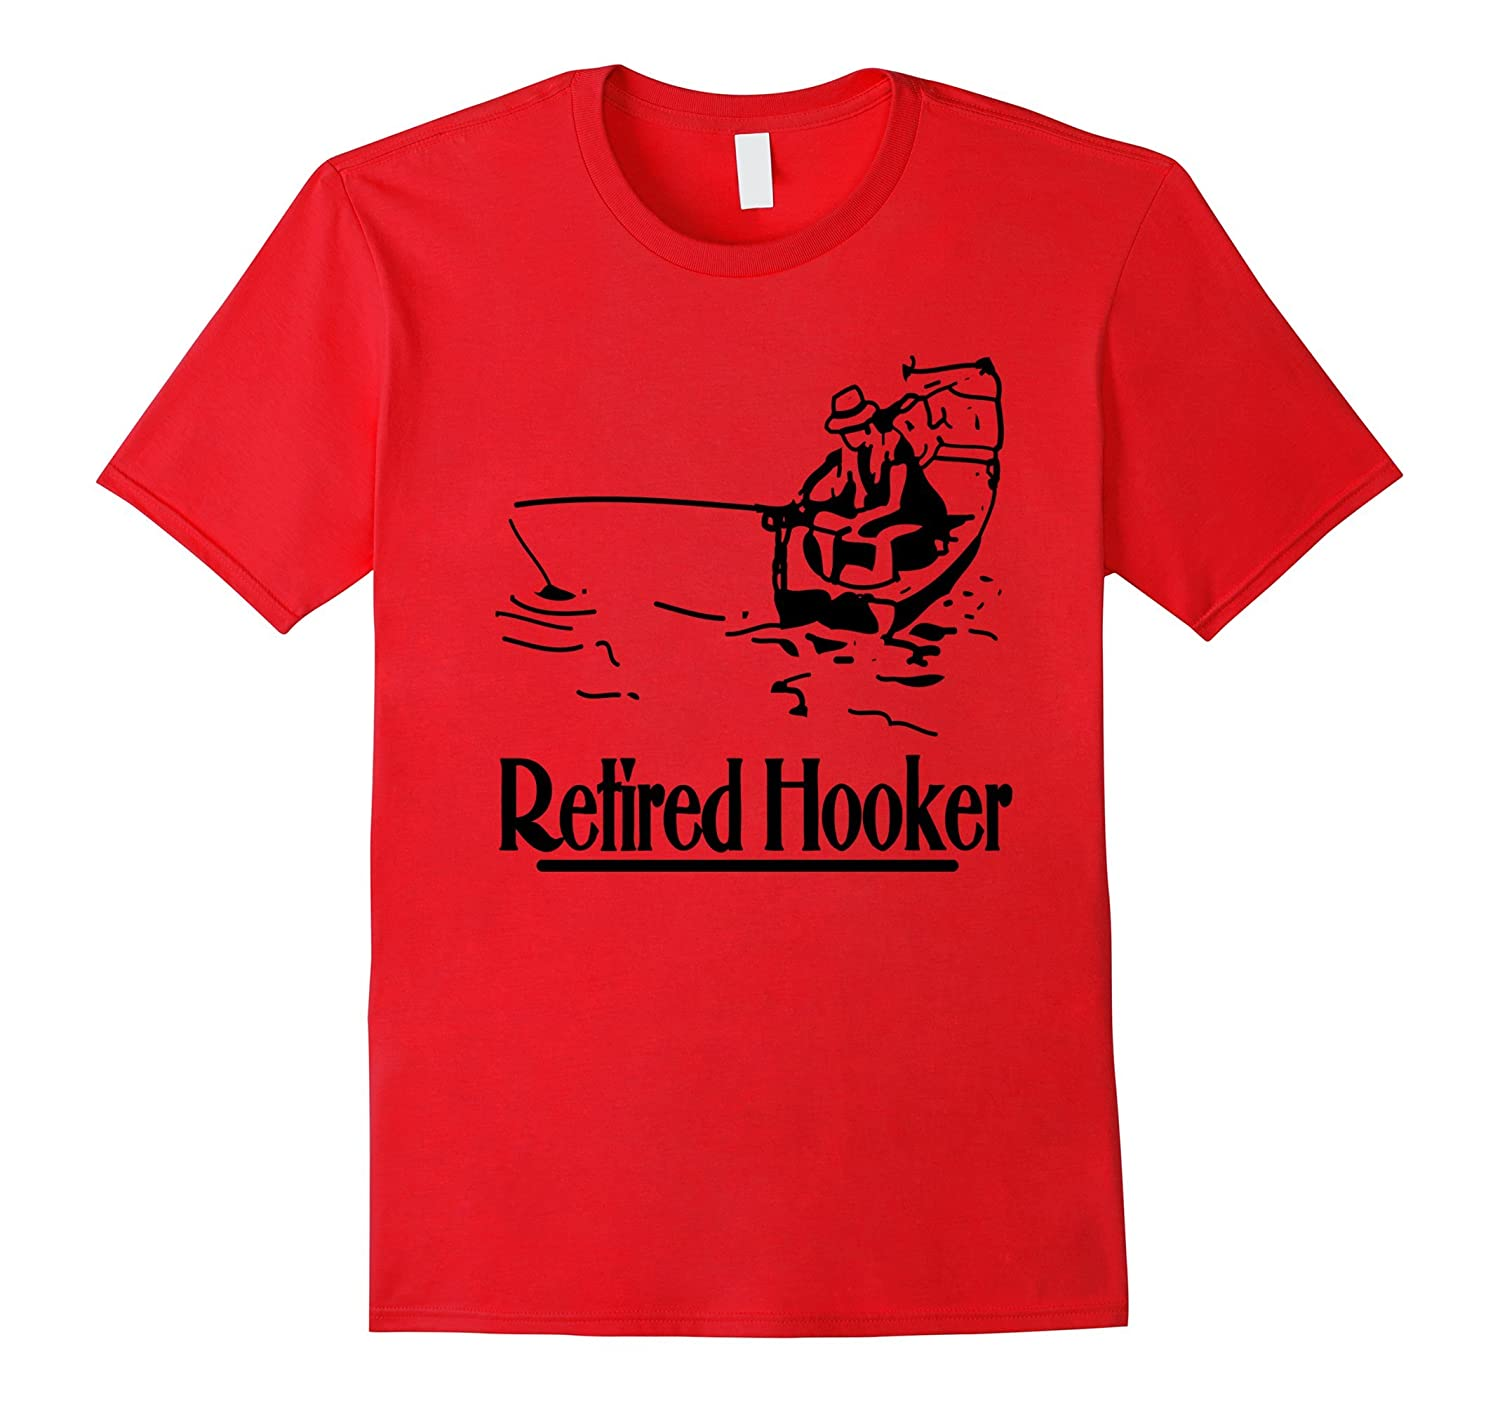 MOM AND POP FUNNY WEEKEND FISHING RETIRED HOOKER T-SHIRT-Vaci